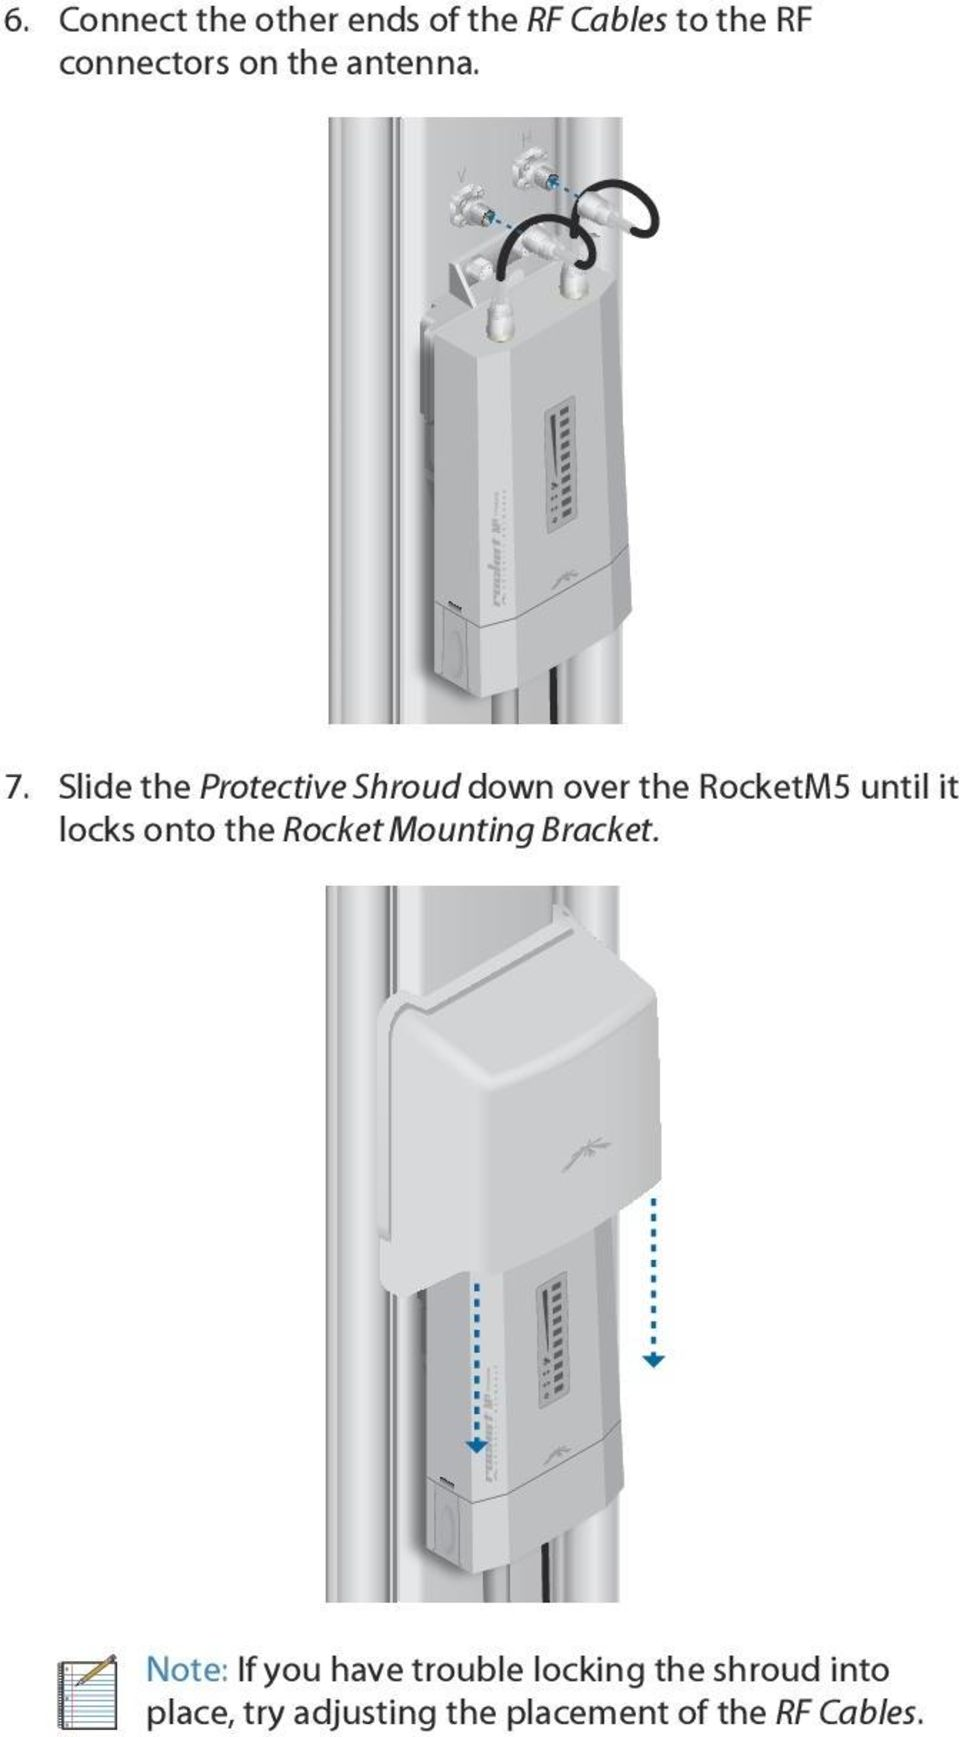 Slide the Protective Shroud down over the RocketM5 until it locks onto